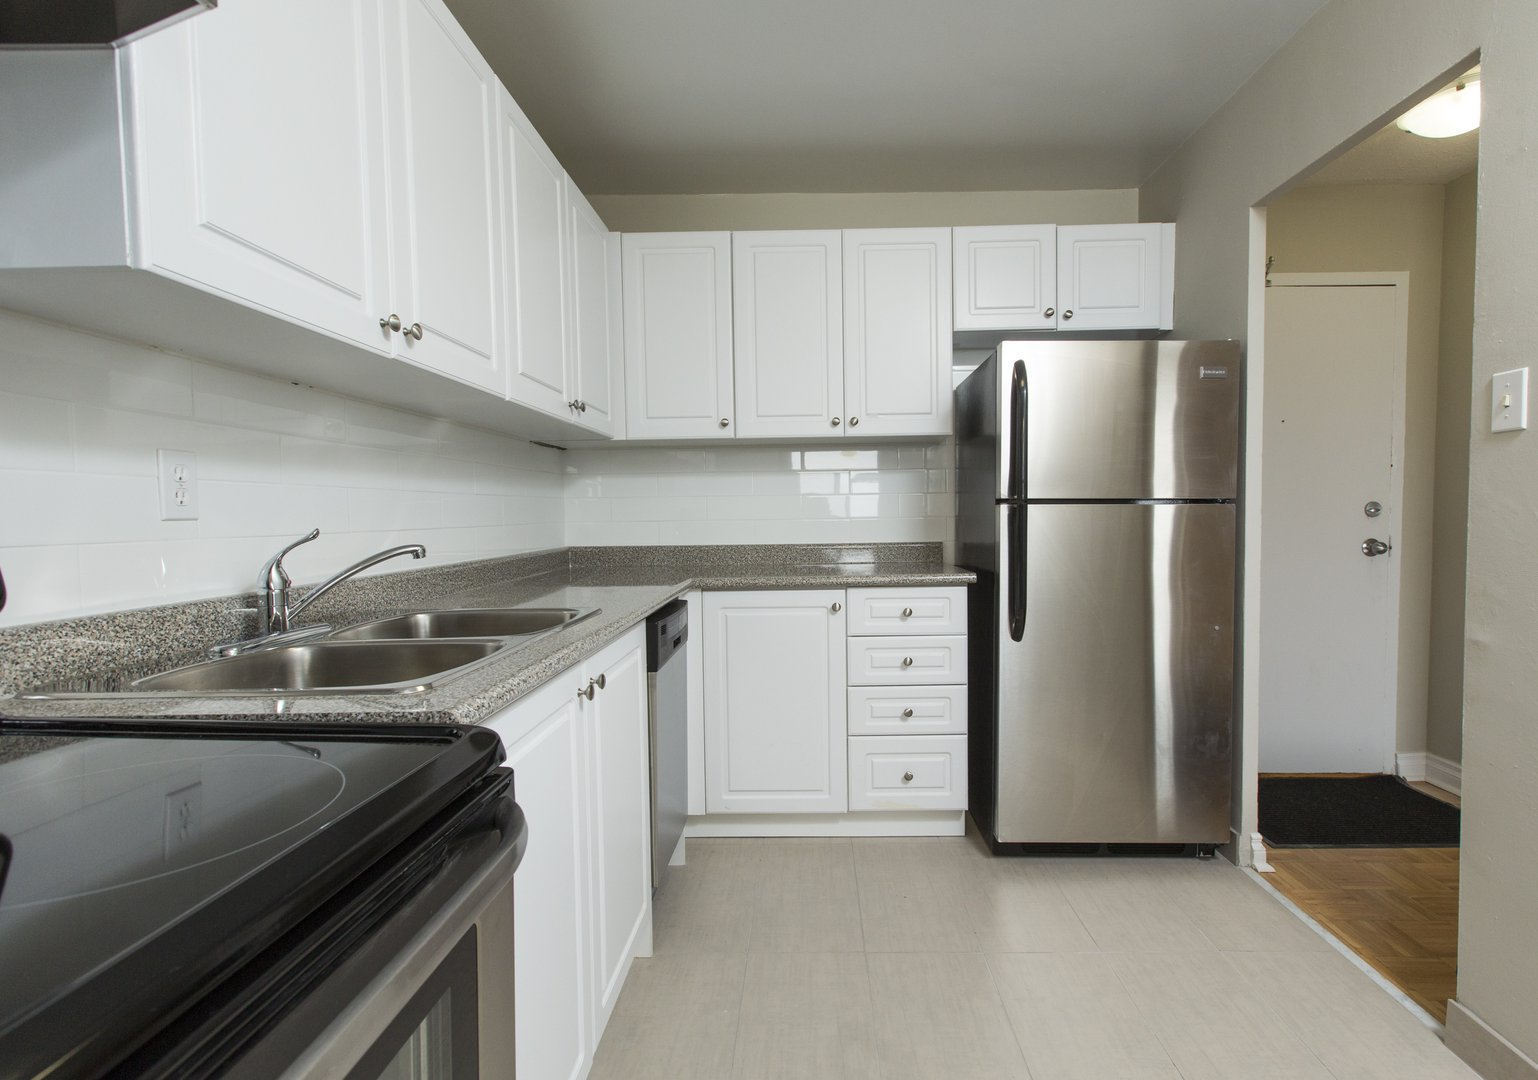 Apartment for rent at 33 Kennedy Rd S, Brampton, ON. This is the kitchen with hardwood floor, stainless steel and tile floor.